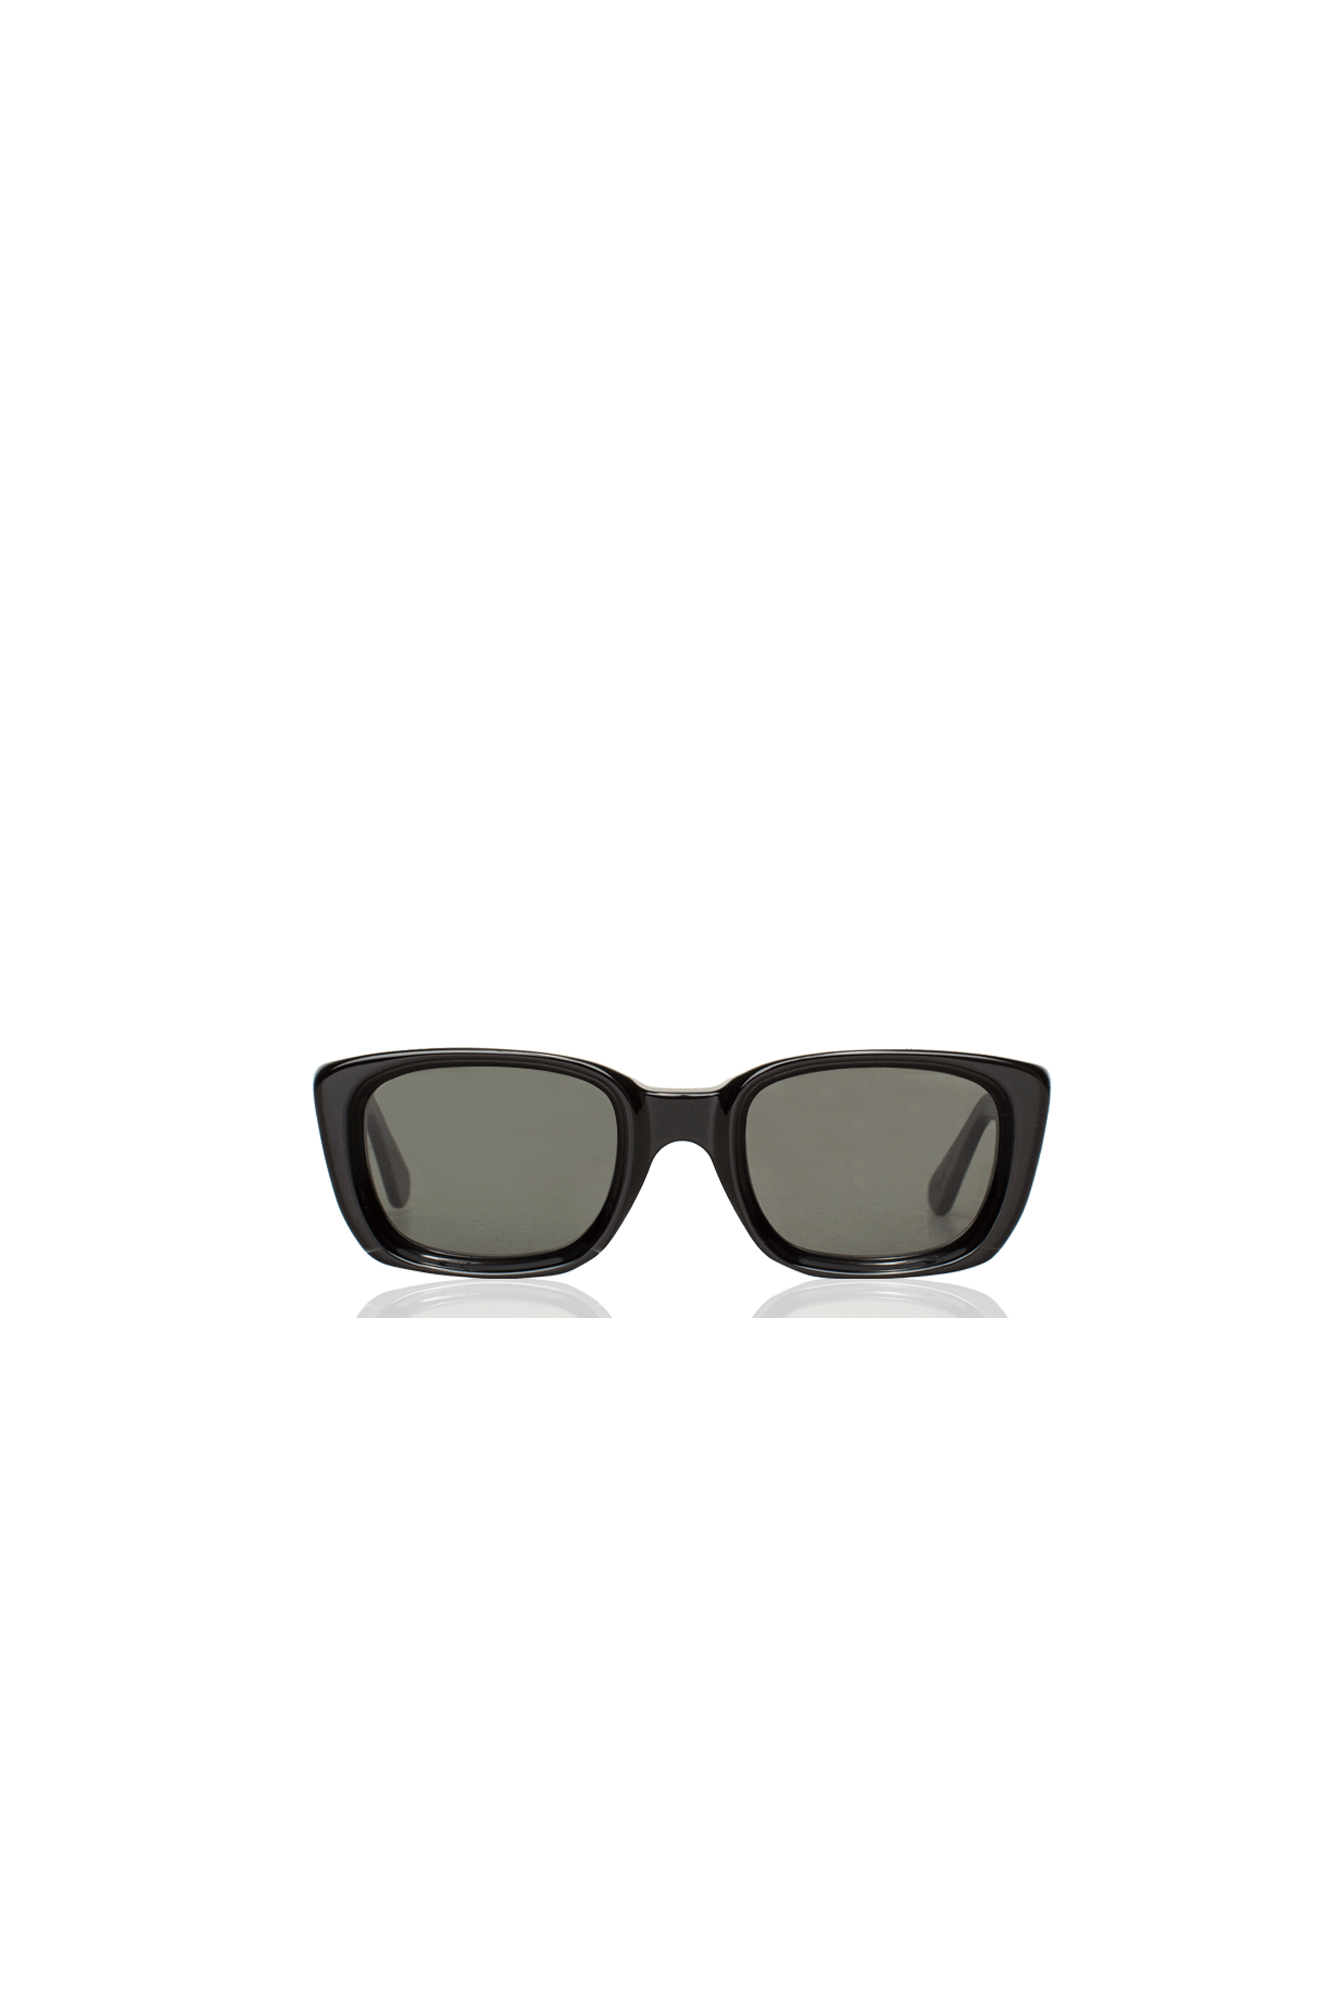 Retrosuperfuture Sunglasses Lira Black IV8S#000#BLK#OS - One Block Down